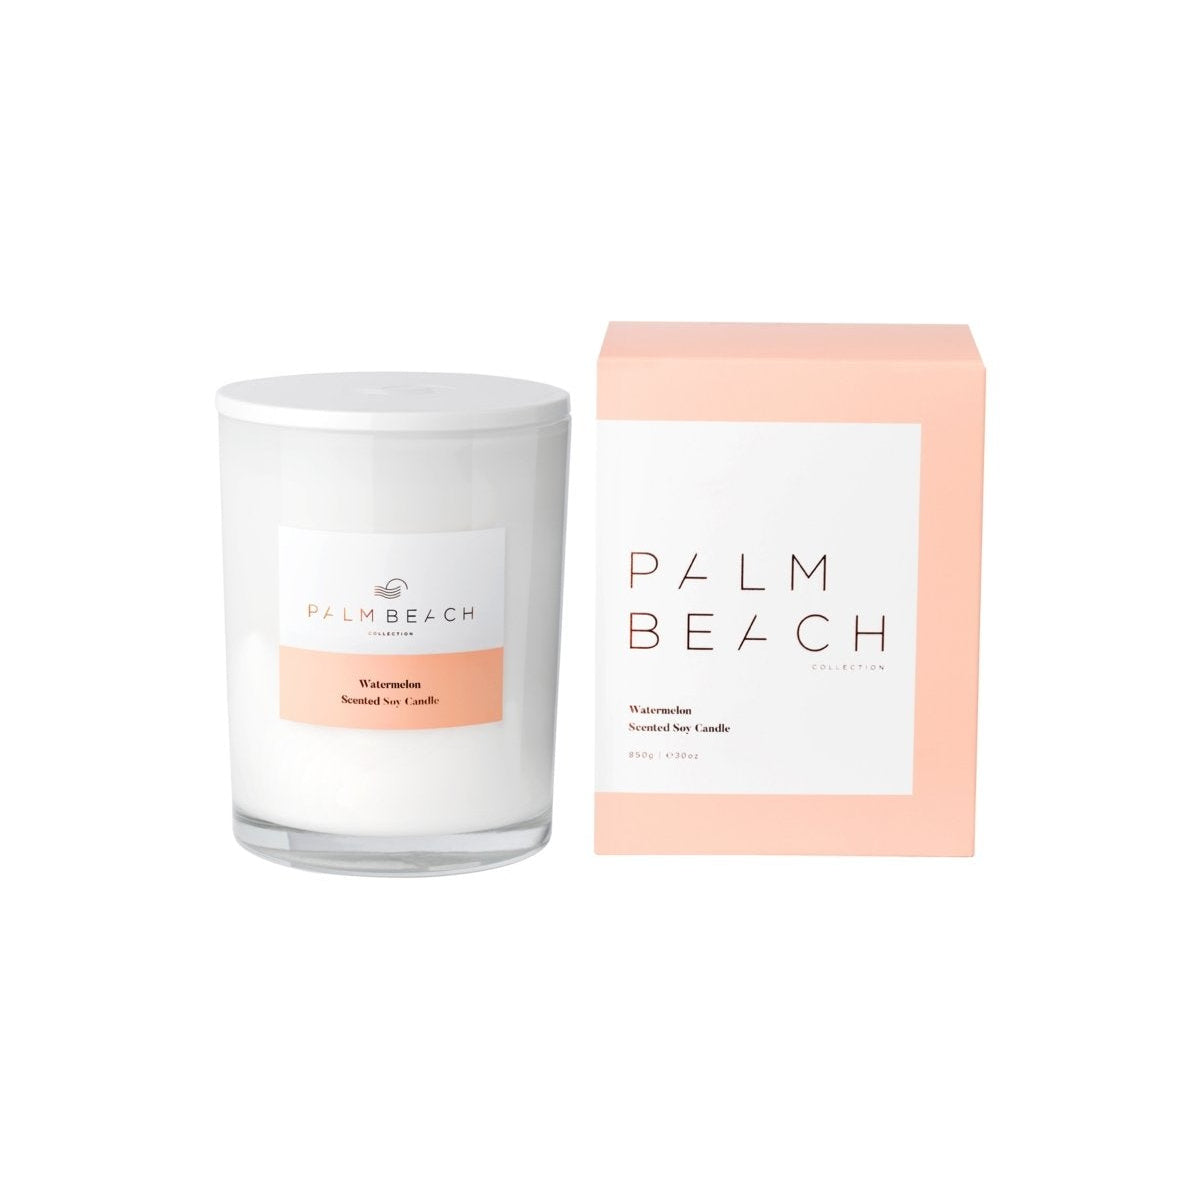 Watermelon 850g Candle - Minimax